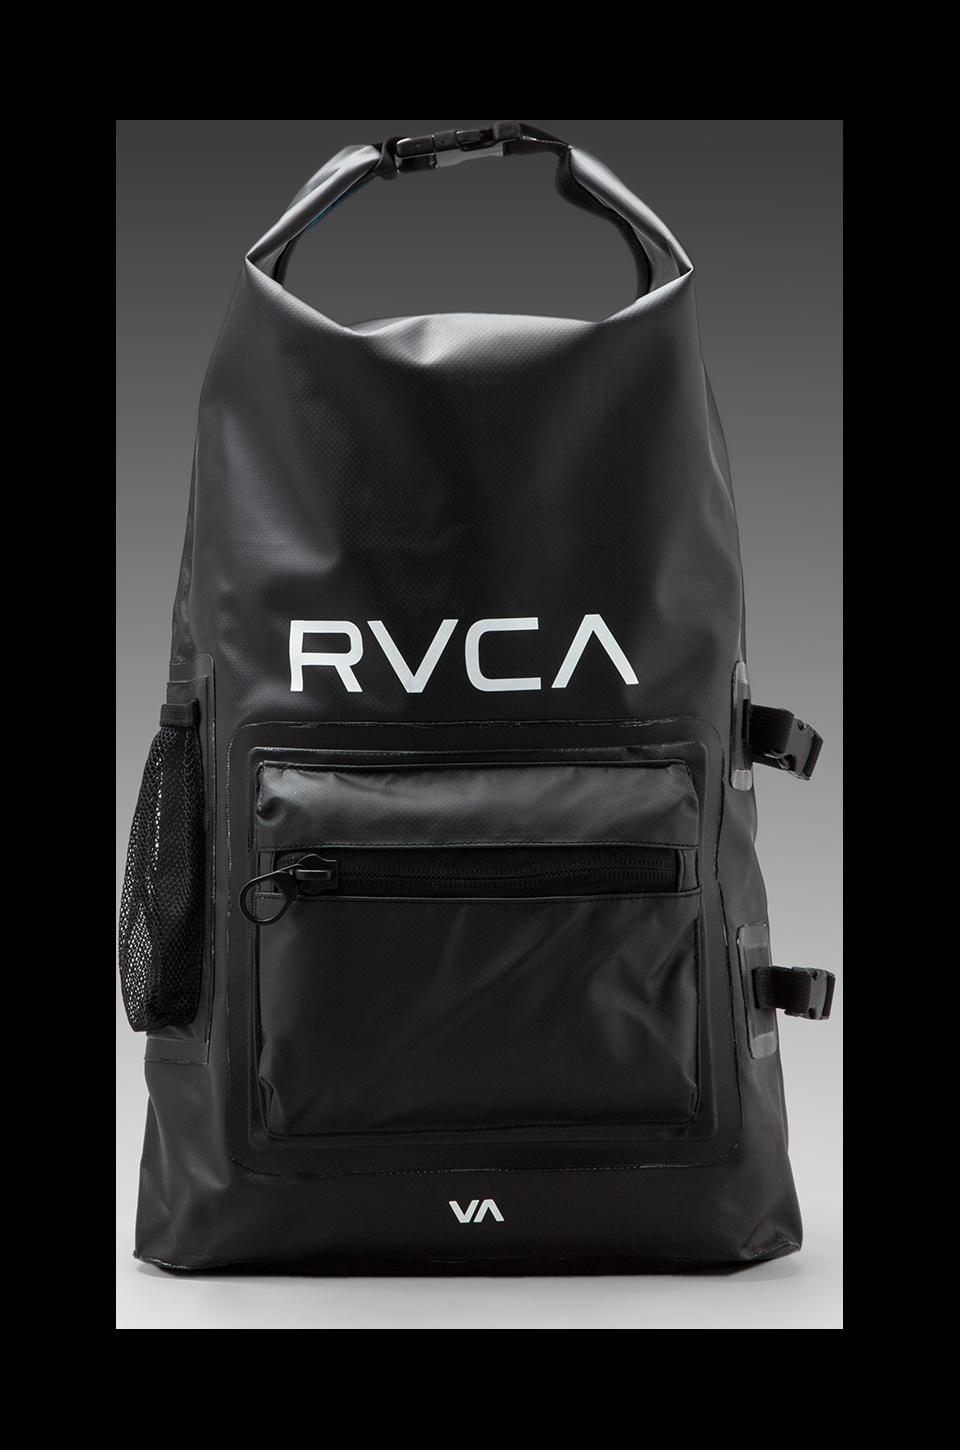 RVCA Go-Be Wet/Dry Backpack in Black